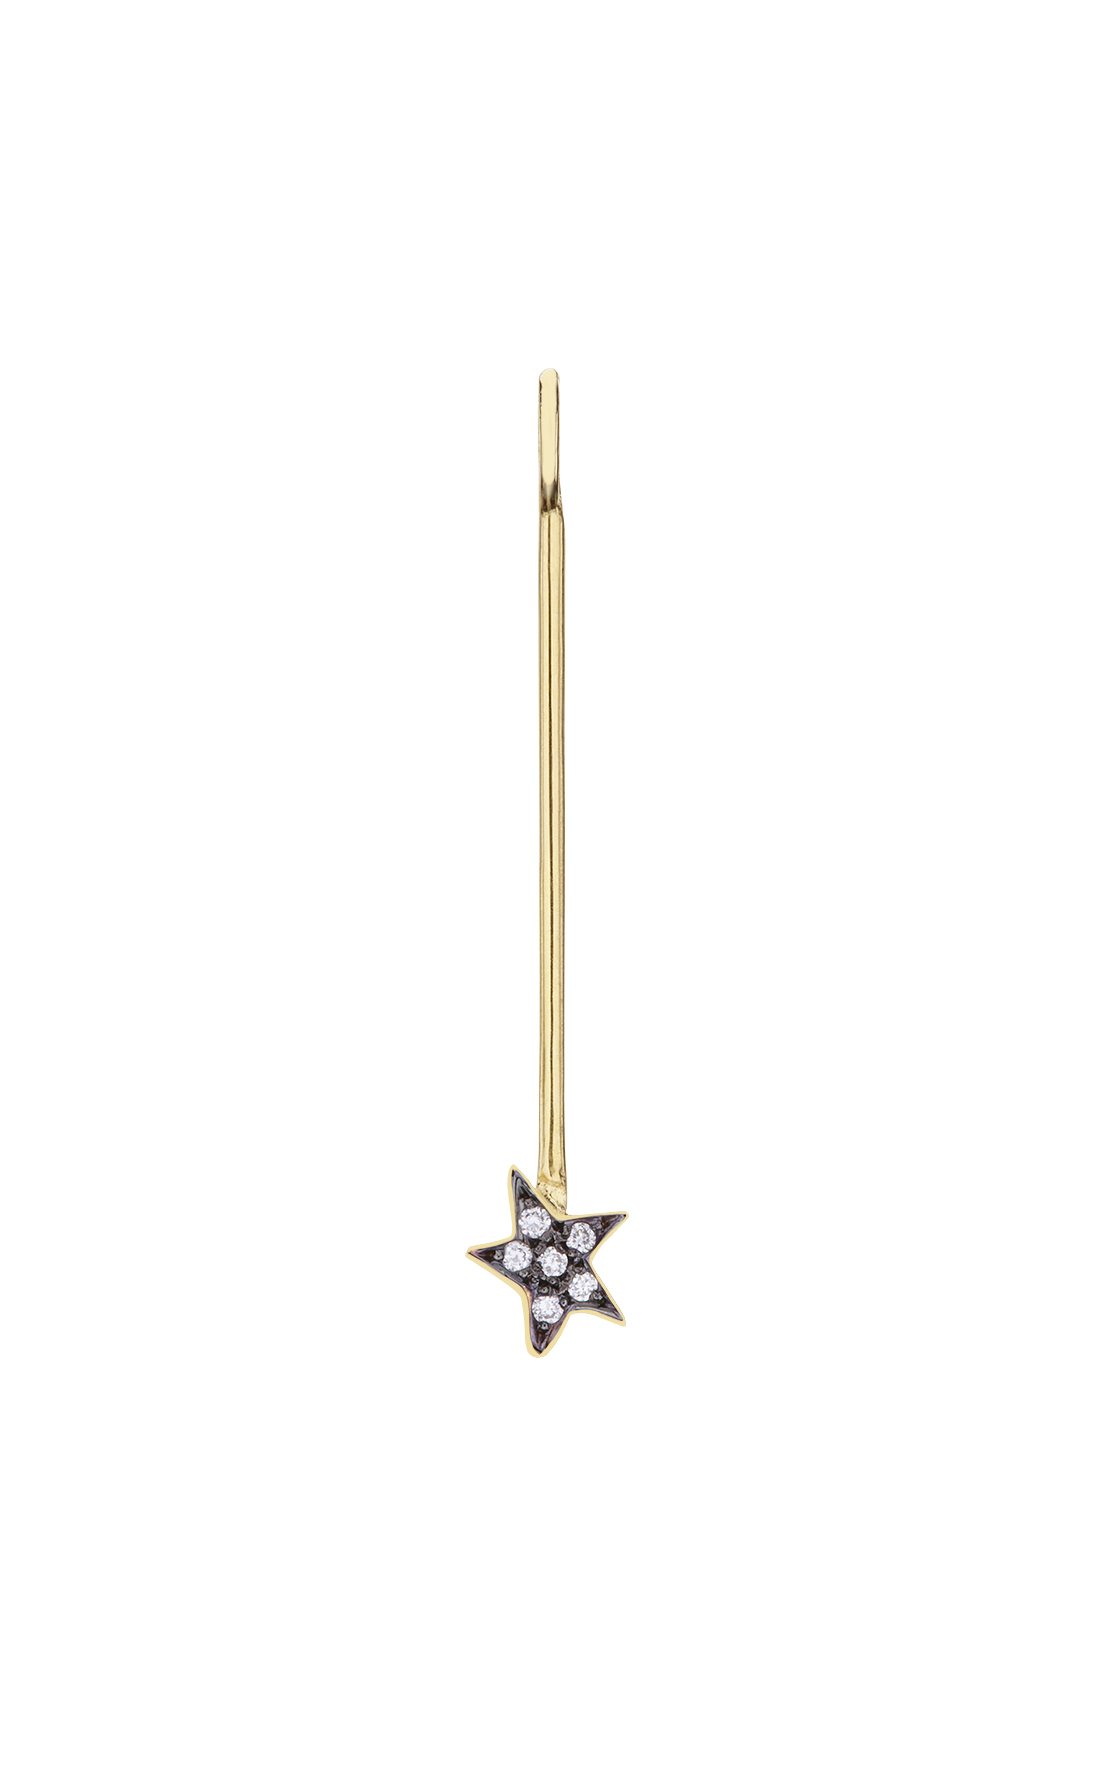 M020 - Long Star Diamond Pendant